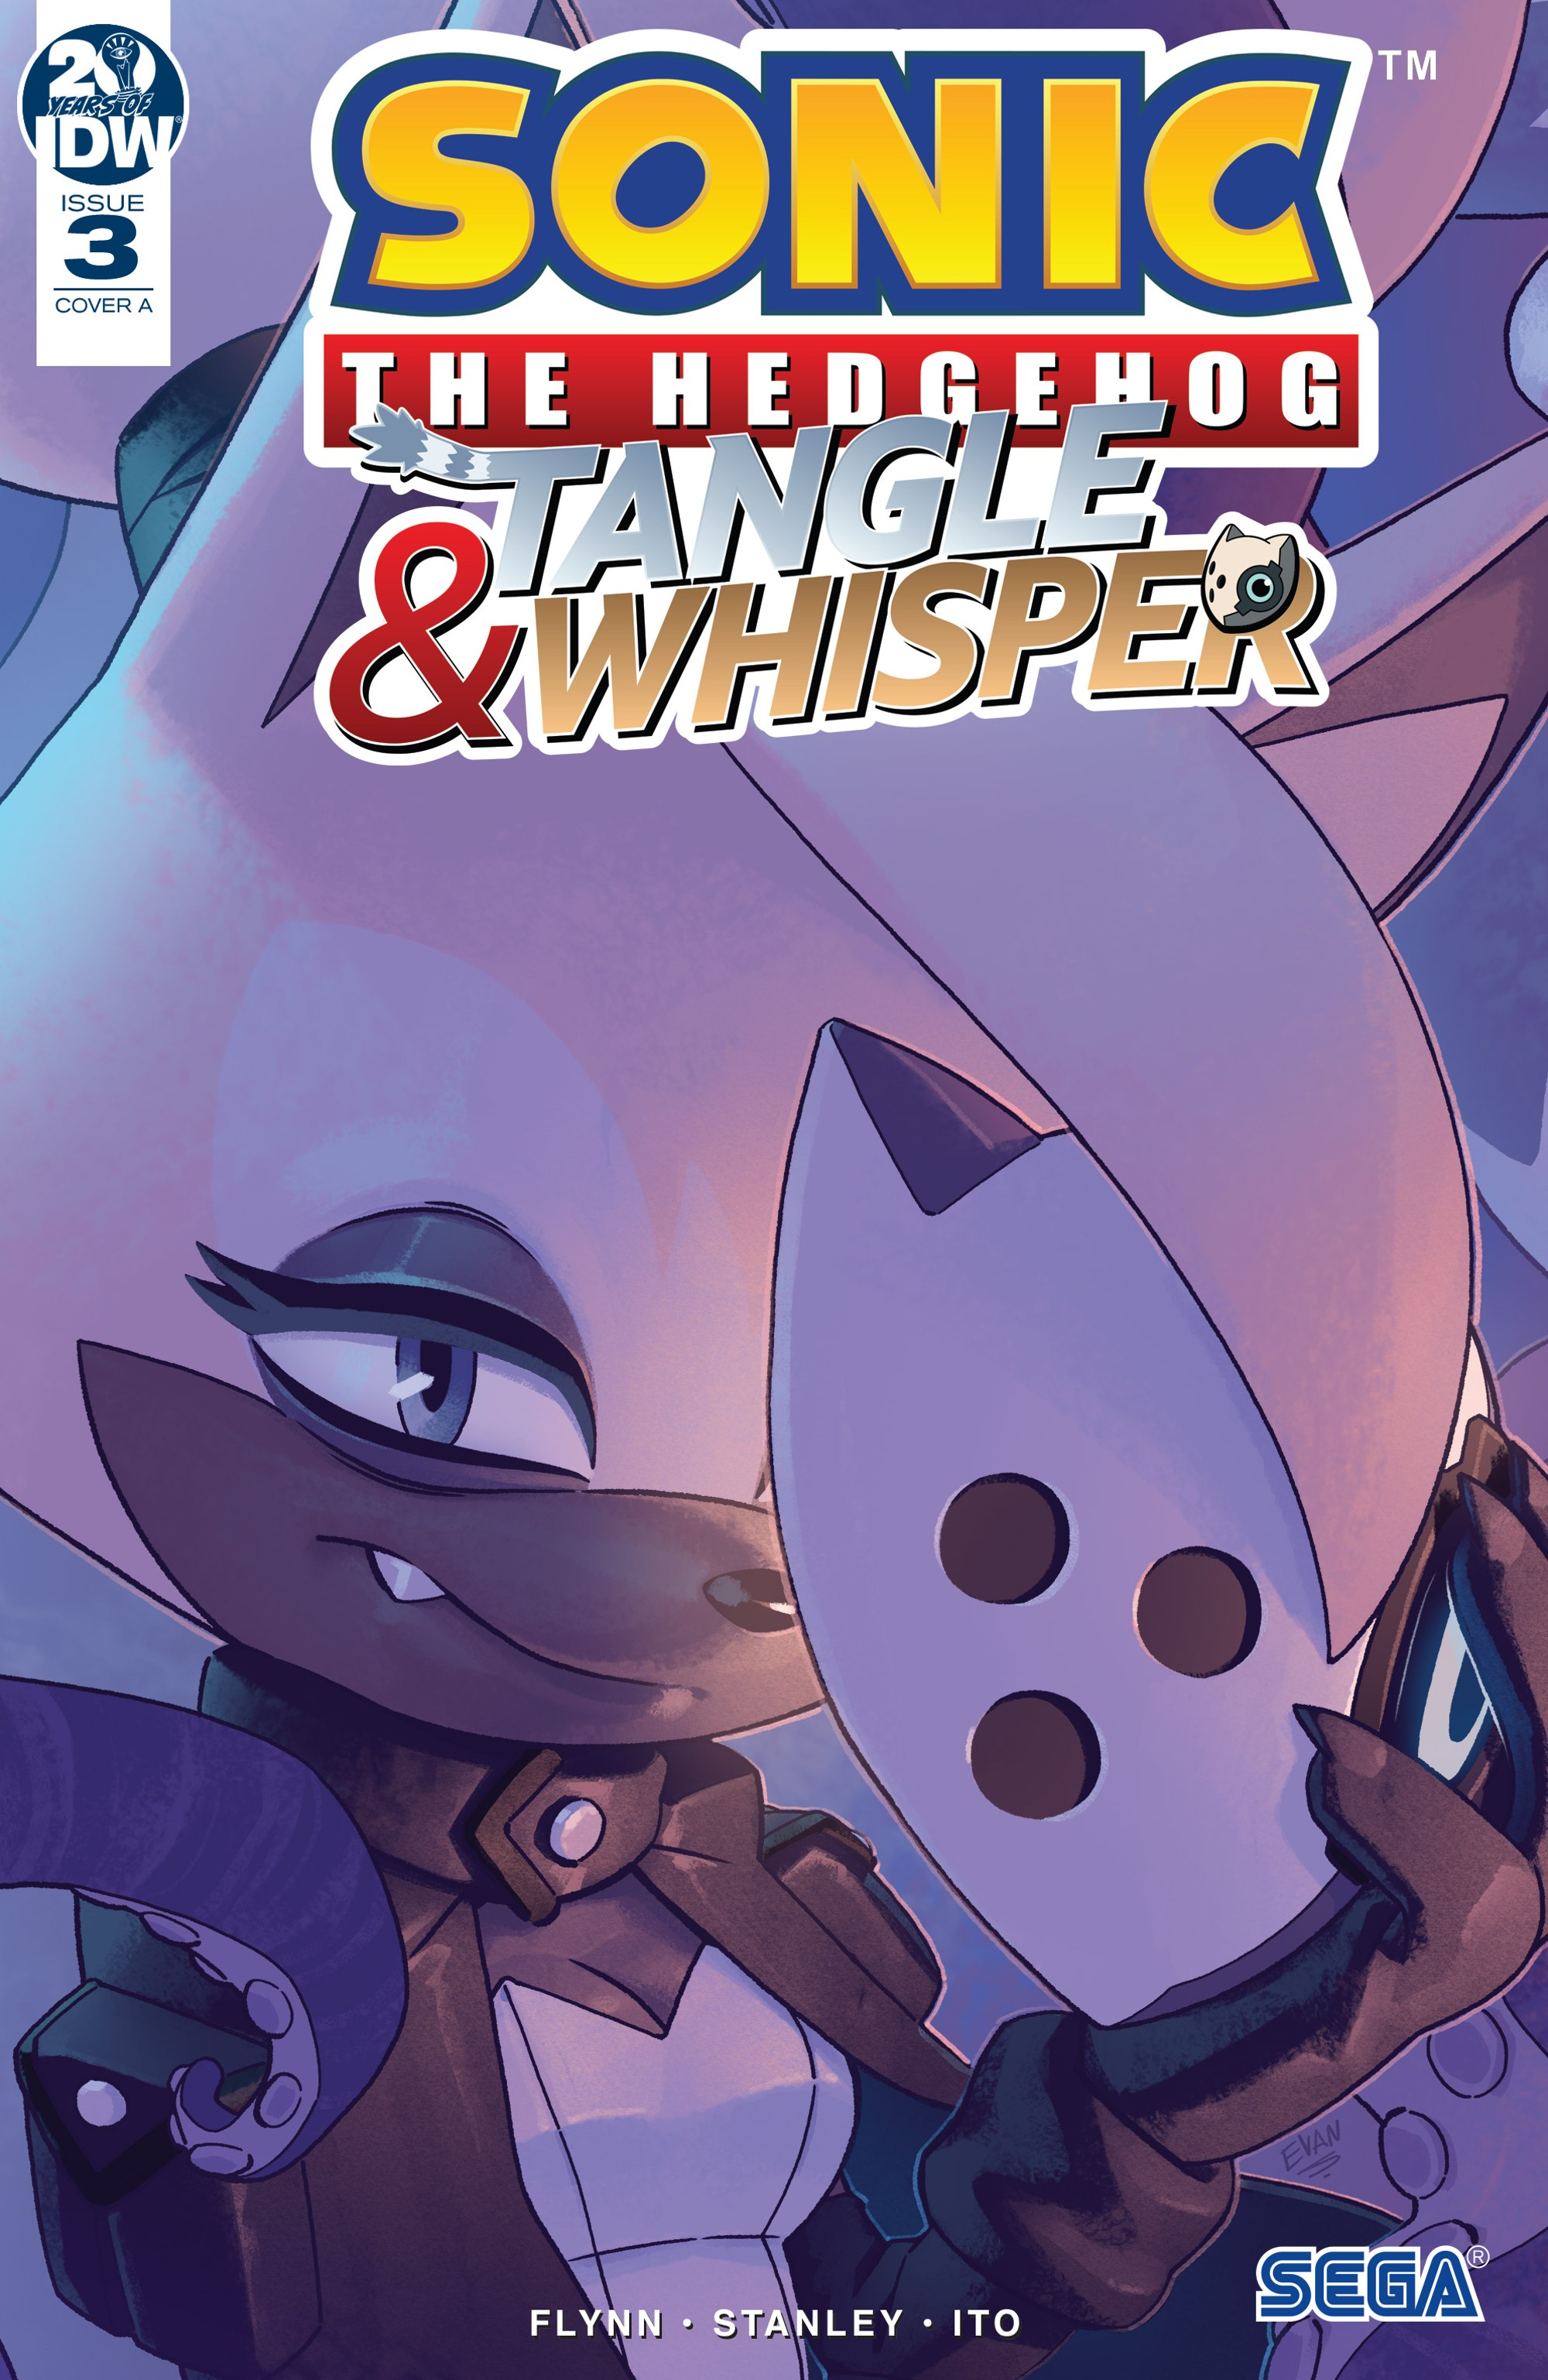 Sonic the Hedgehog: Tangle & Whisper Issue 3